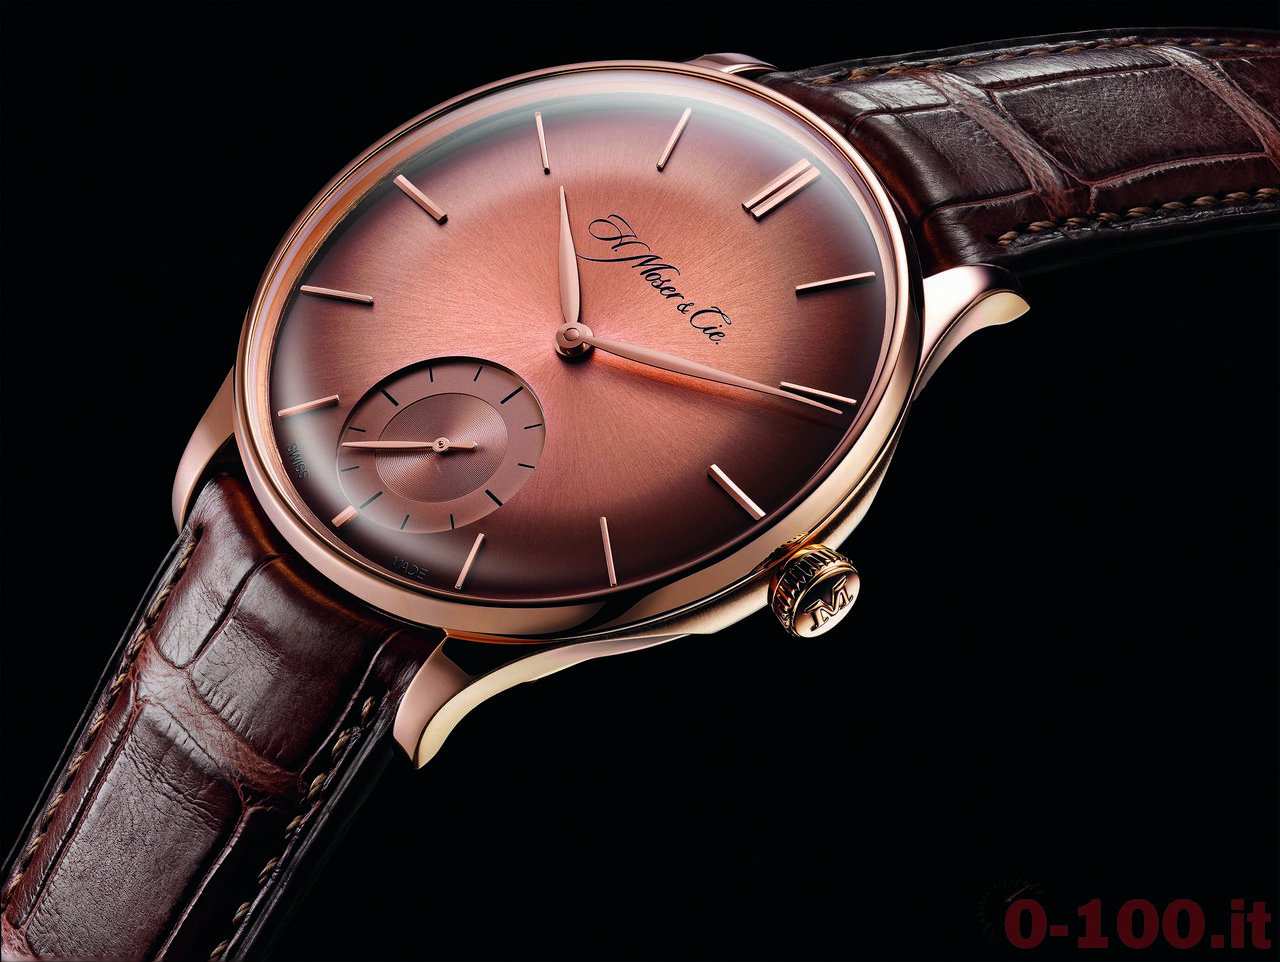 Baselworld-2014-H. Moser & Cie Venturer Small Seconds _0-1001